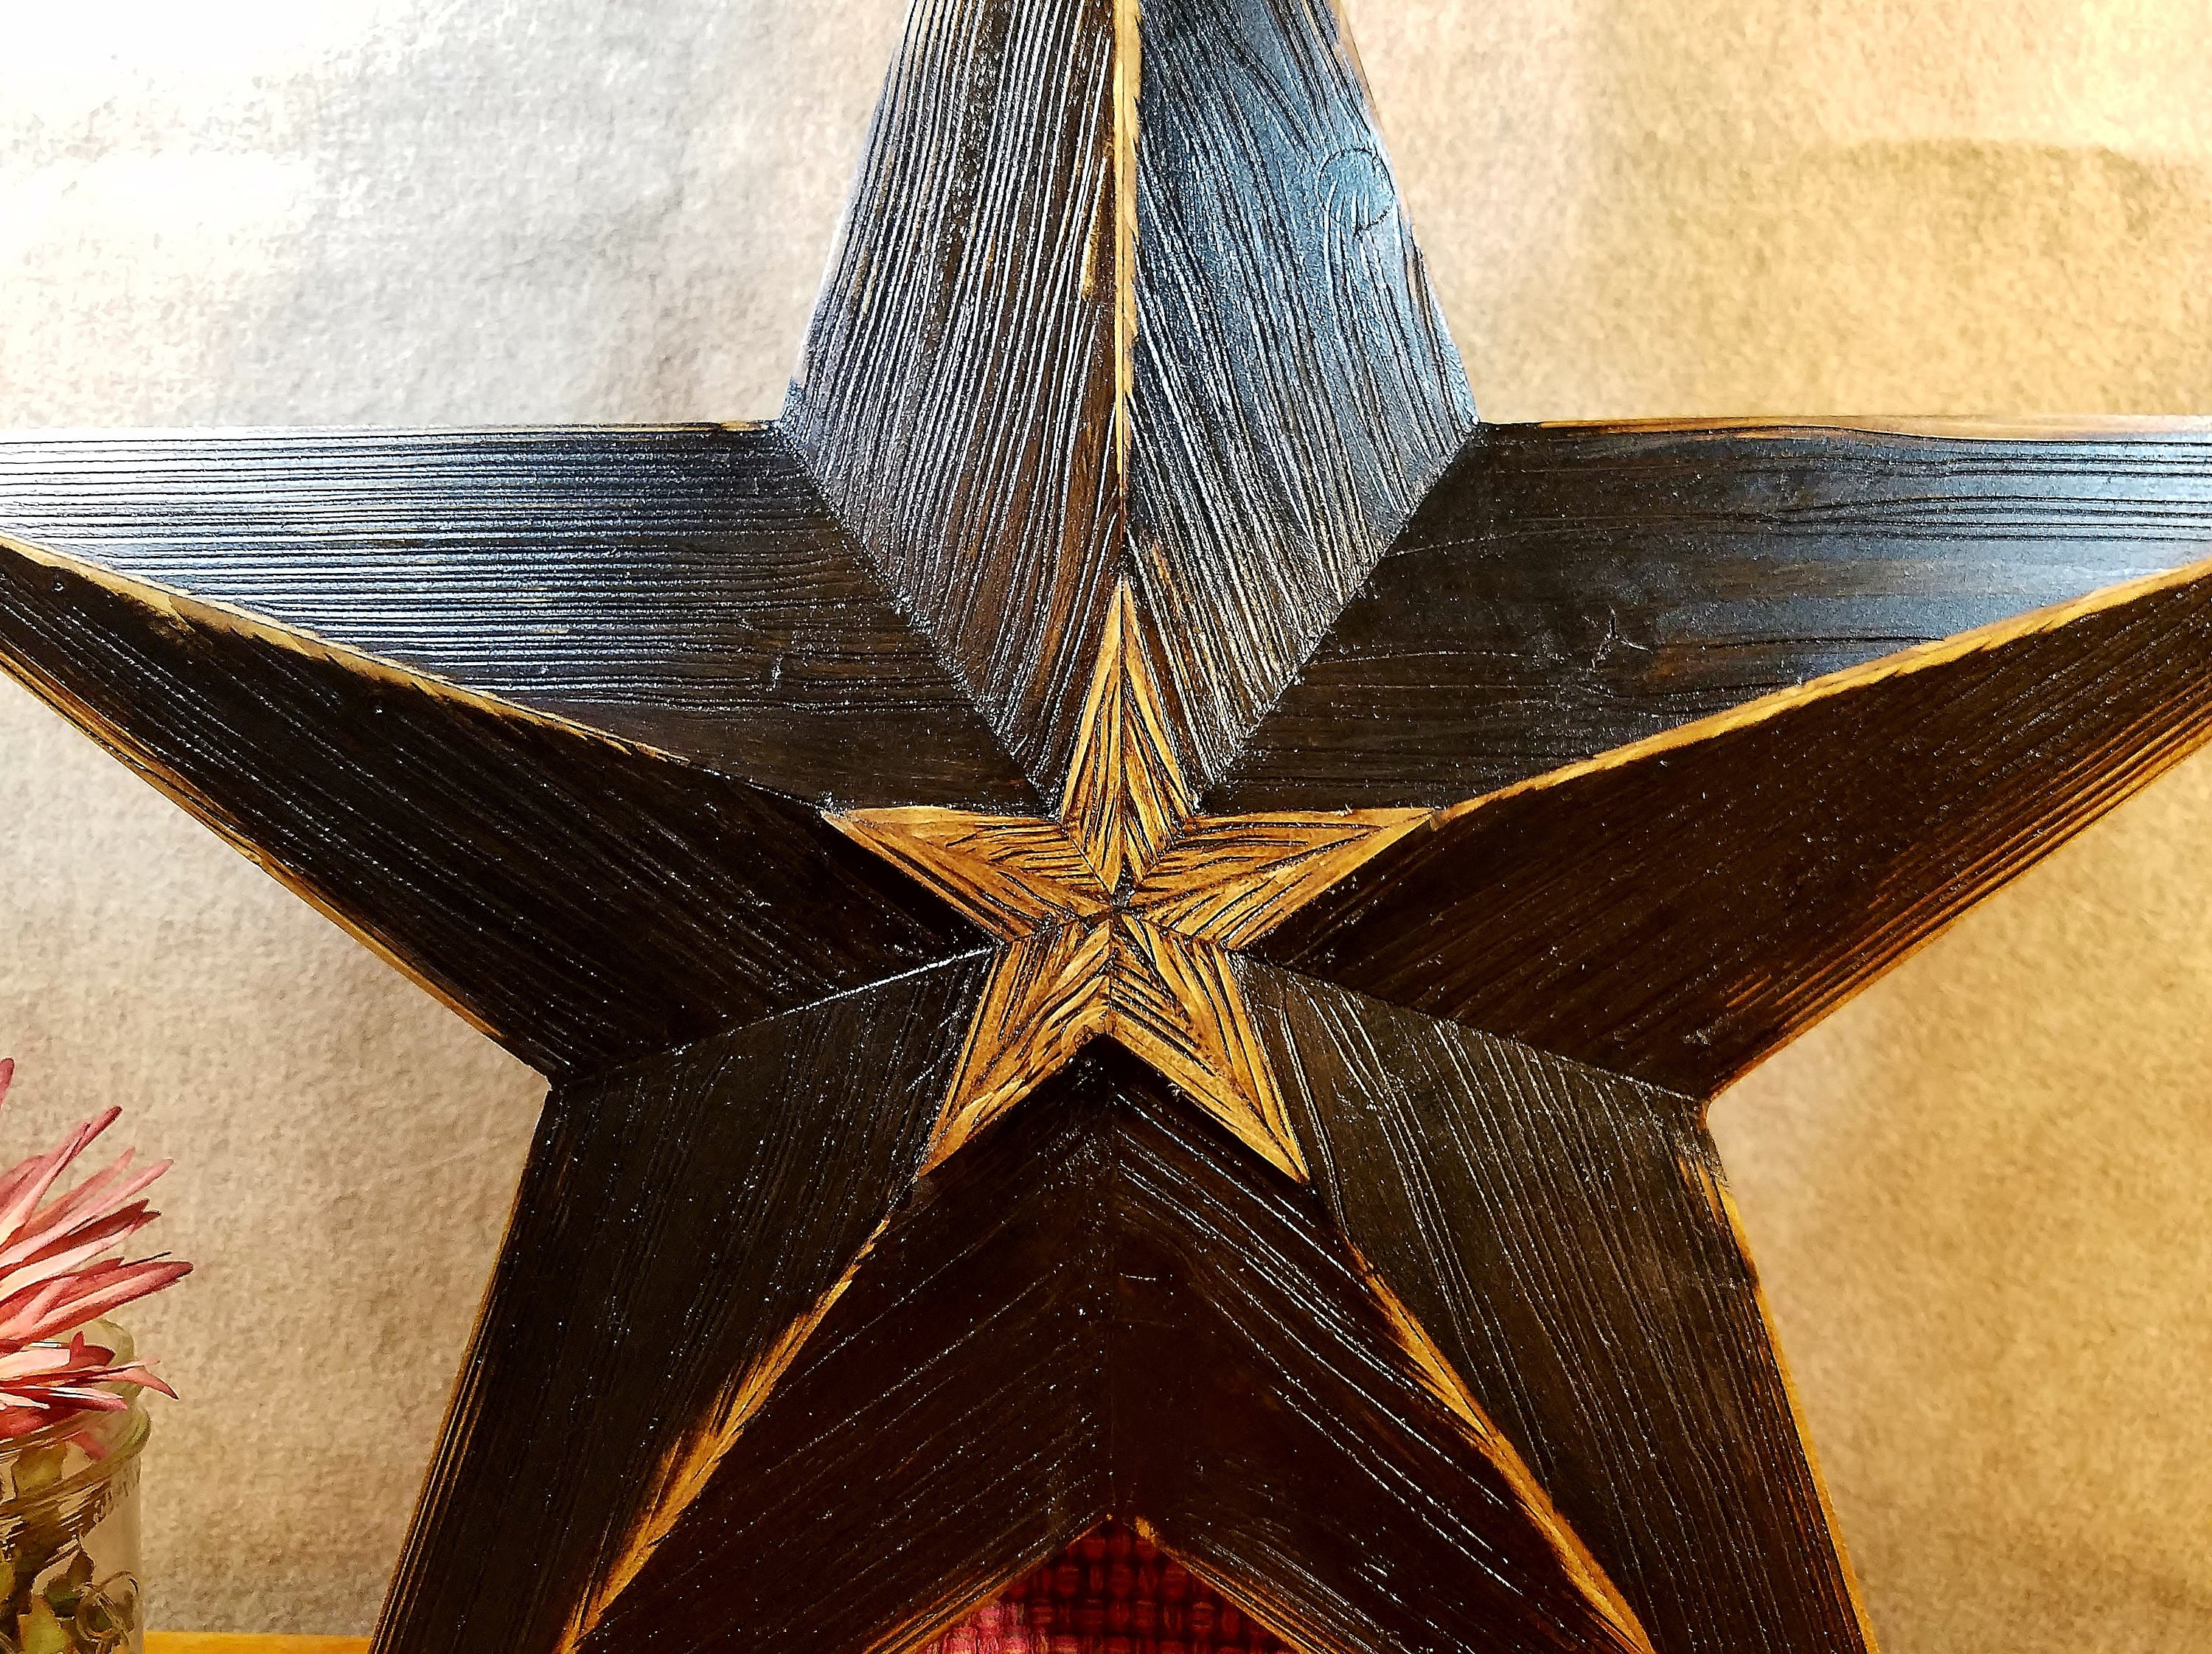 Widely Used Rustic Wood Star Barn Star Large Wooden Star Black Rustic (View 20 of 20)